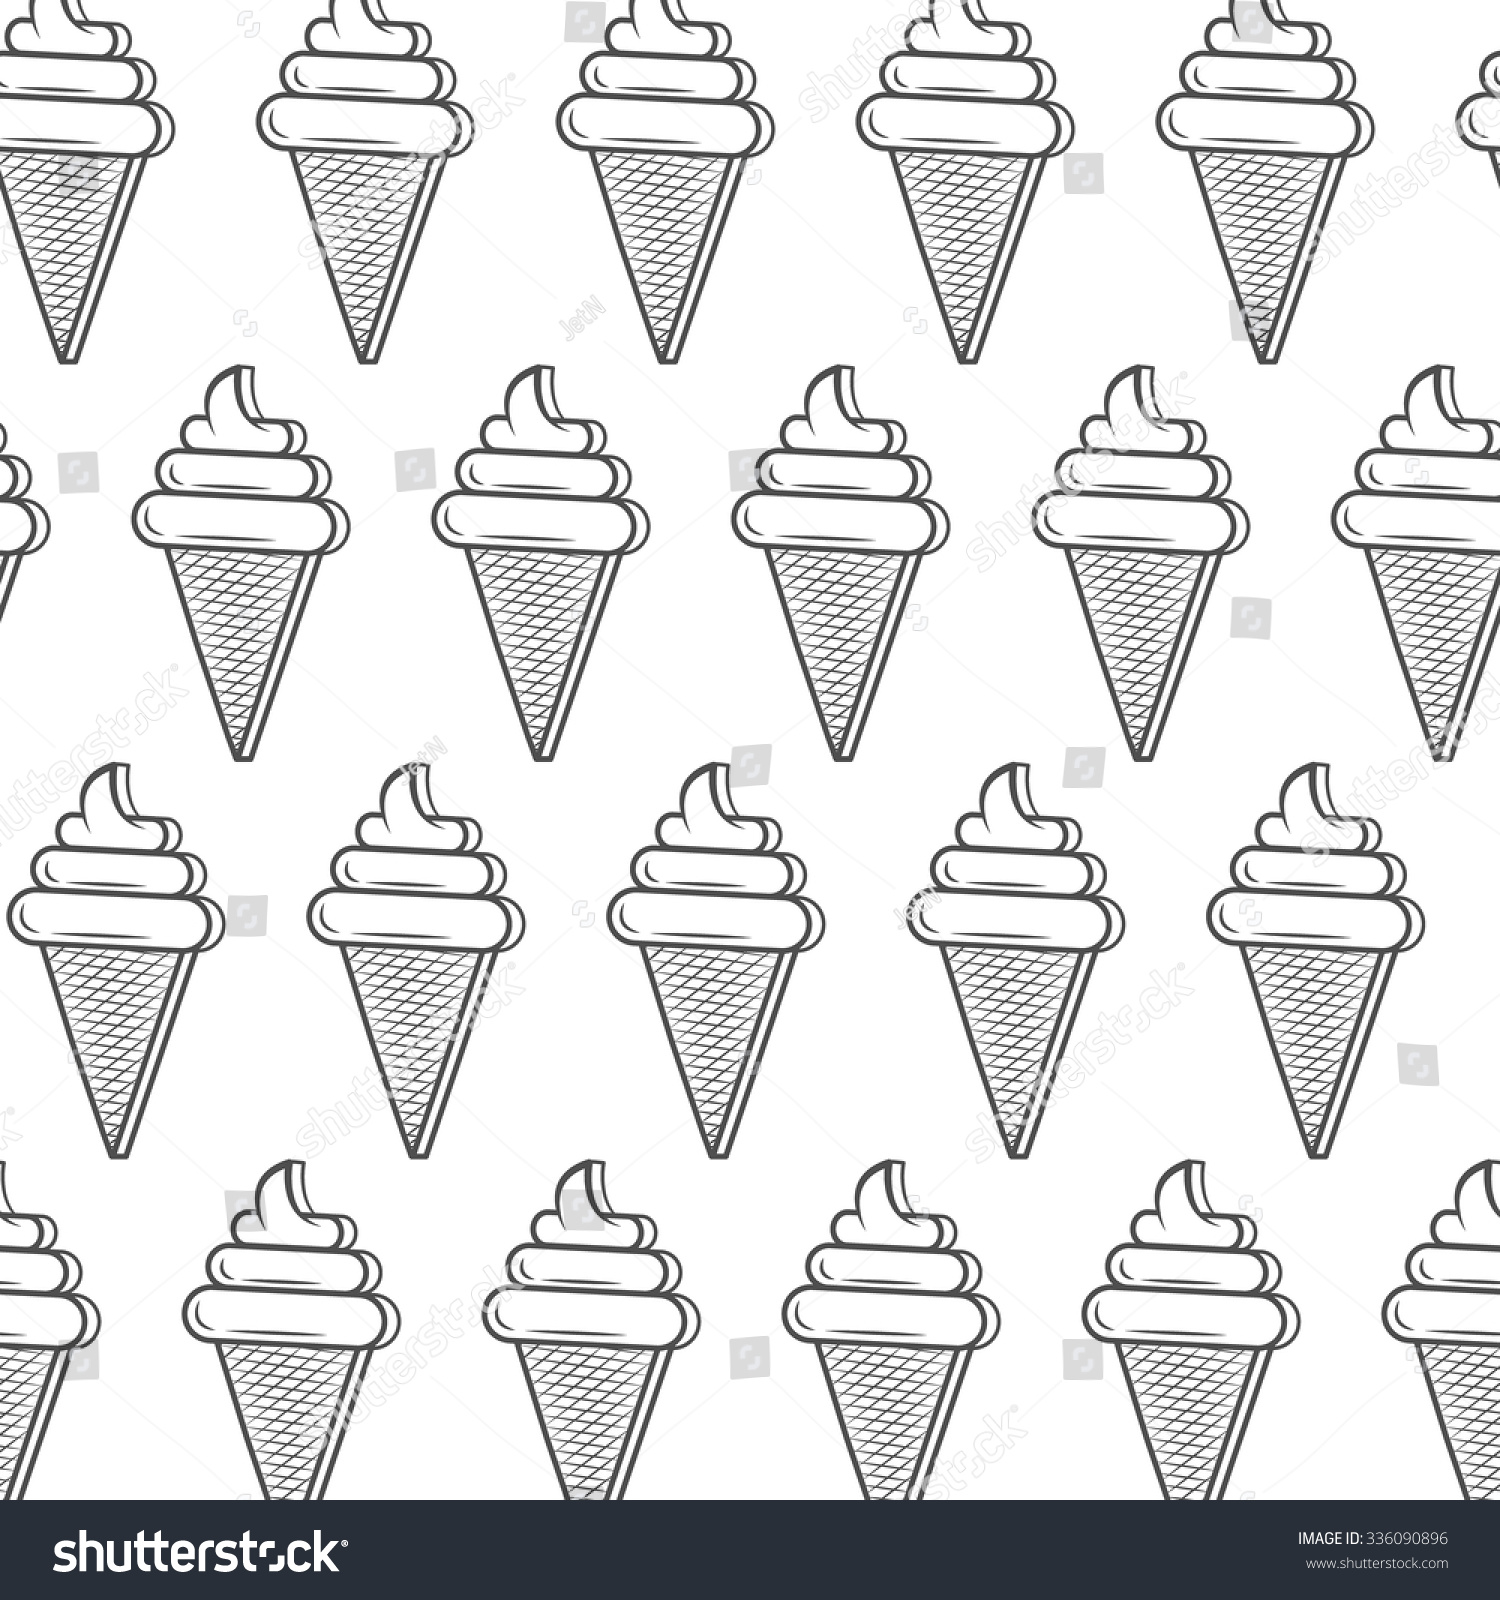 Monochrome ice cream cone seamless pattern stock vector royalty monochrome ice cream cone seamless pattern template for packaging paper cafe background or maxwellsz